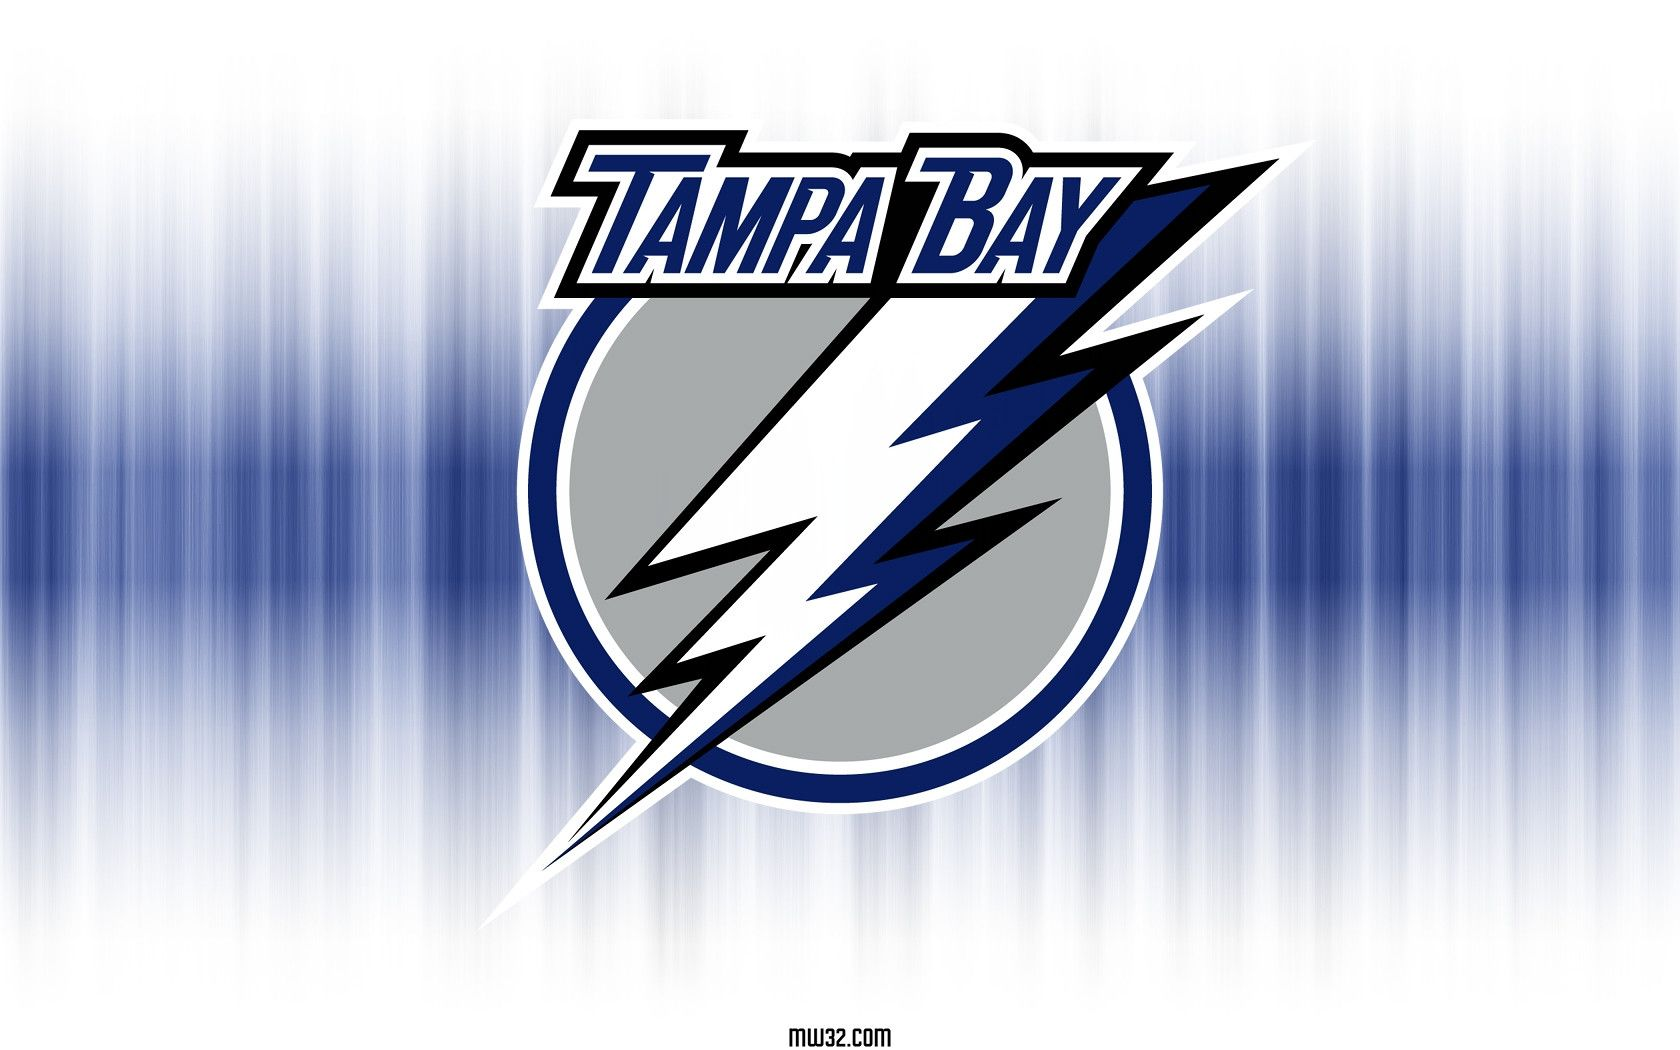 Tampa Bay Lightning Wallpapers HD Wallpapers Base 1680x1050